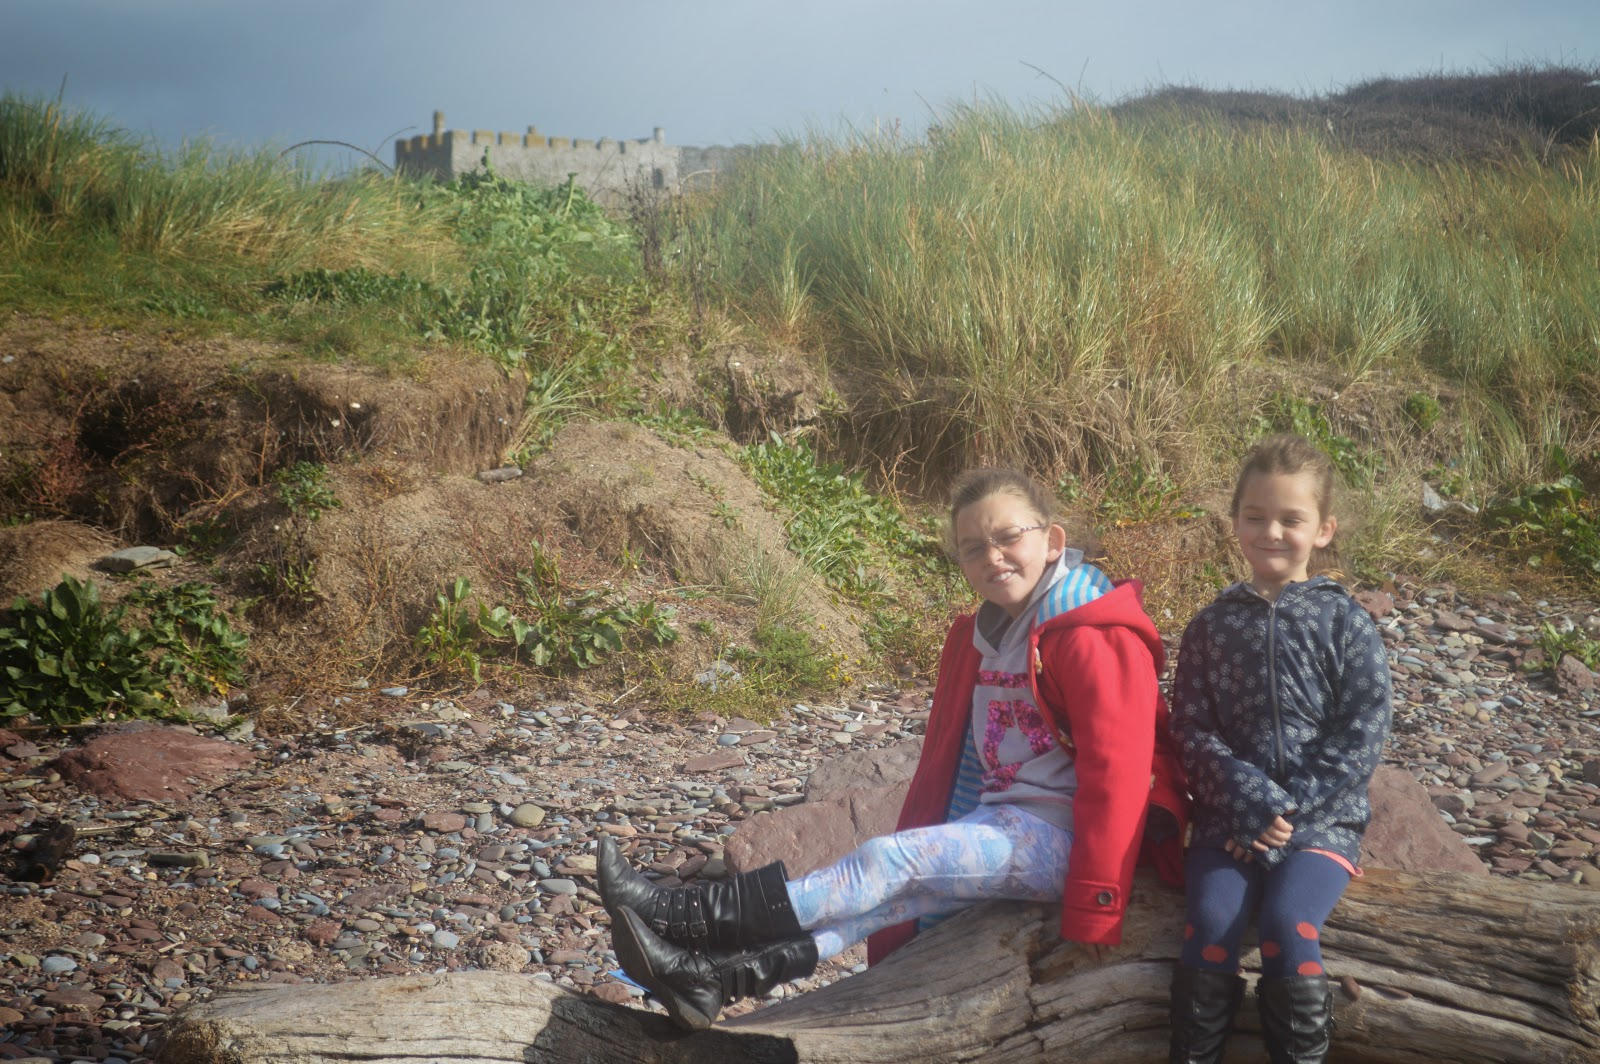 Girls sitting on log Manorbier Beach Pembrokeshire Wales